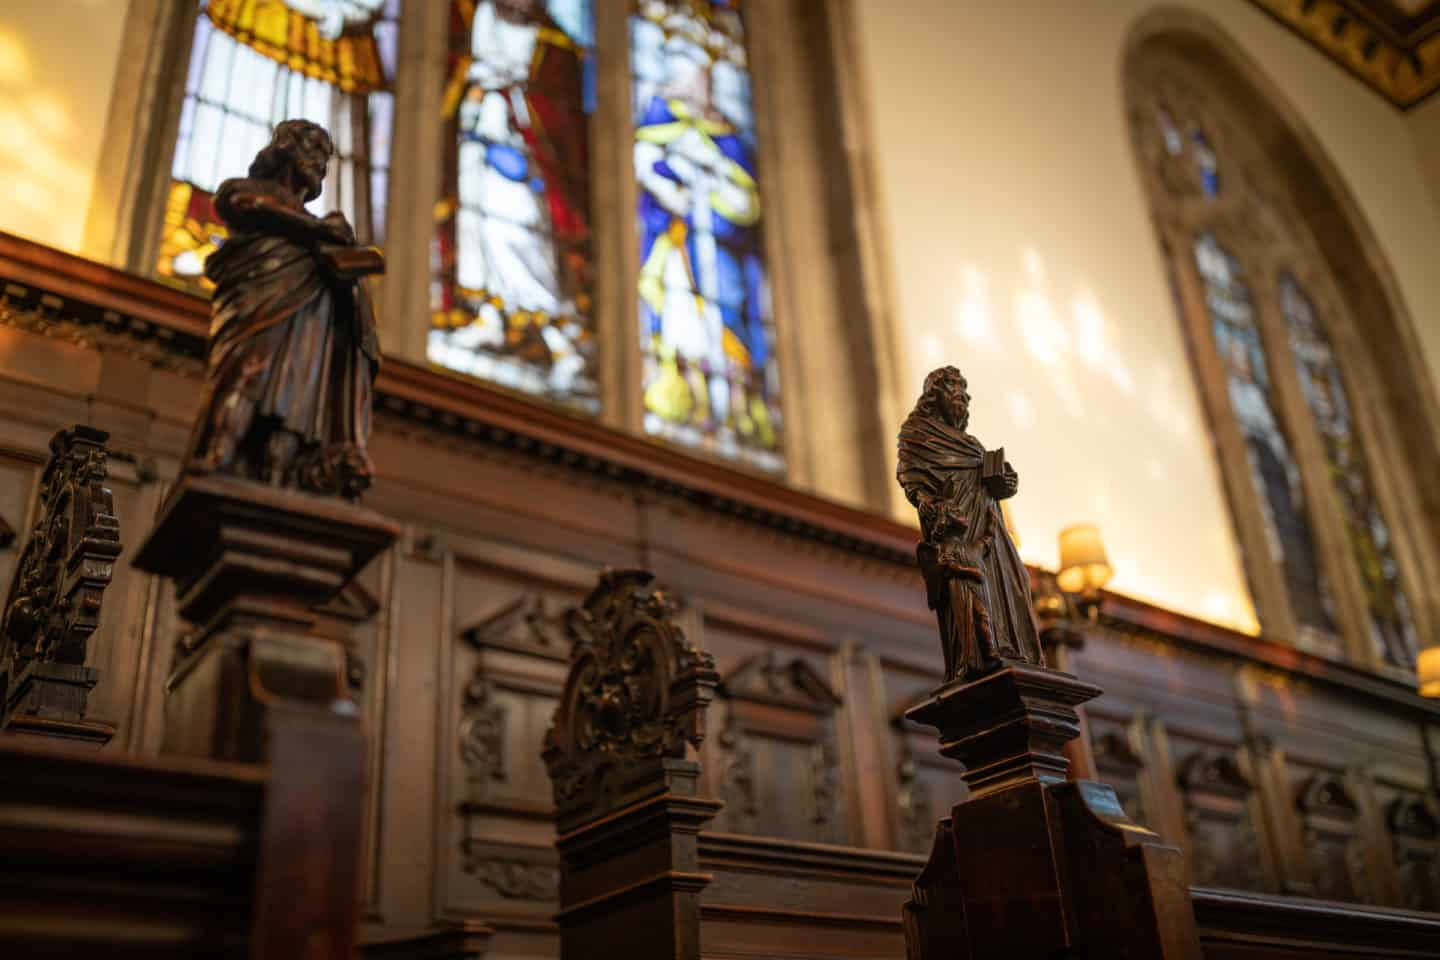 Carved figures of Saints in the College Chapel